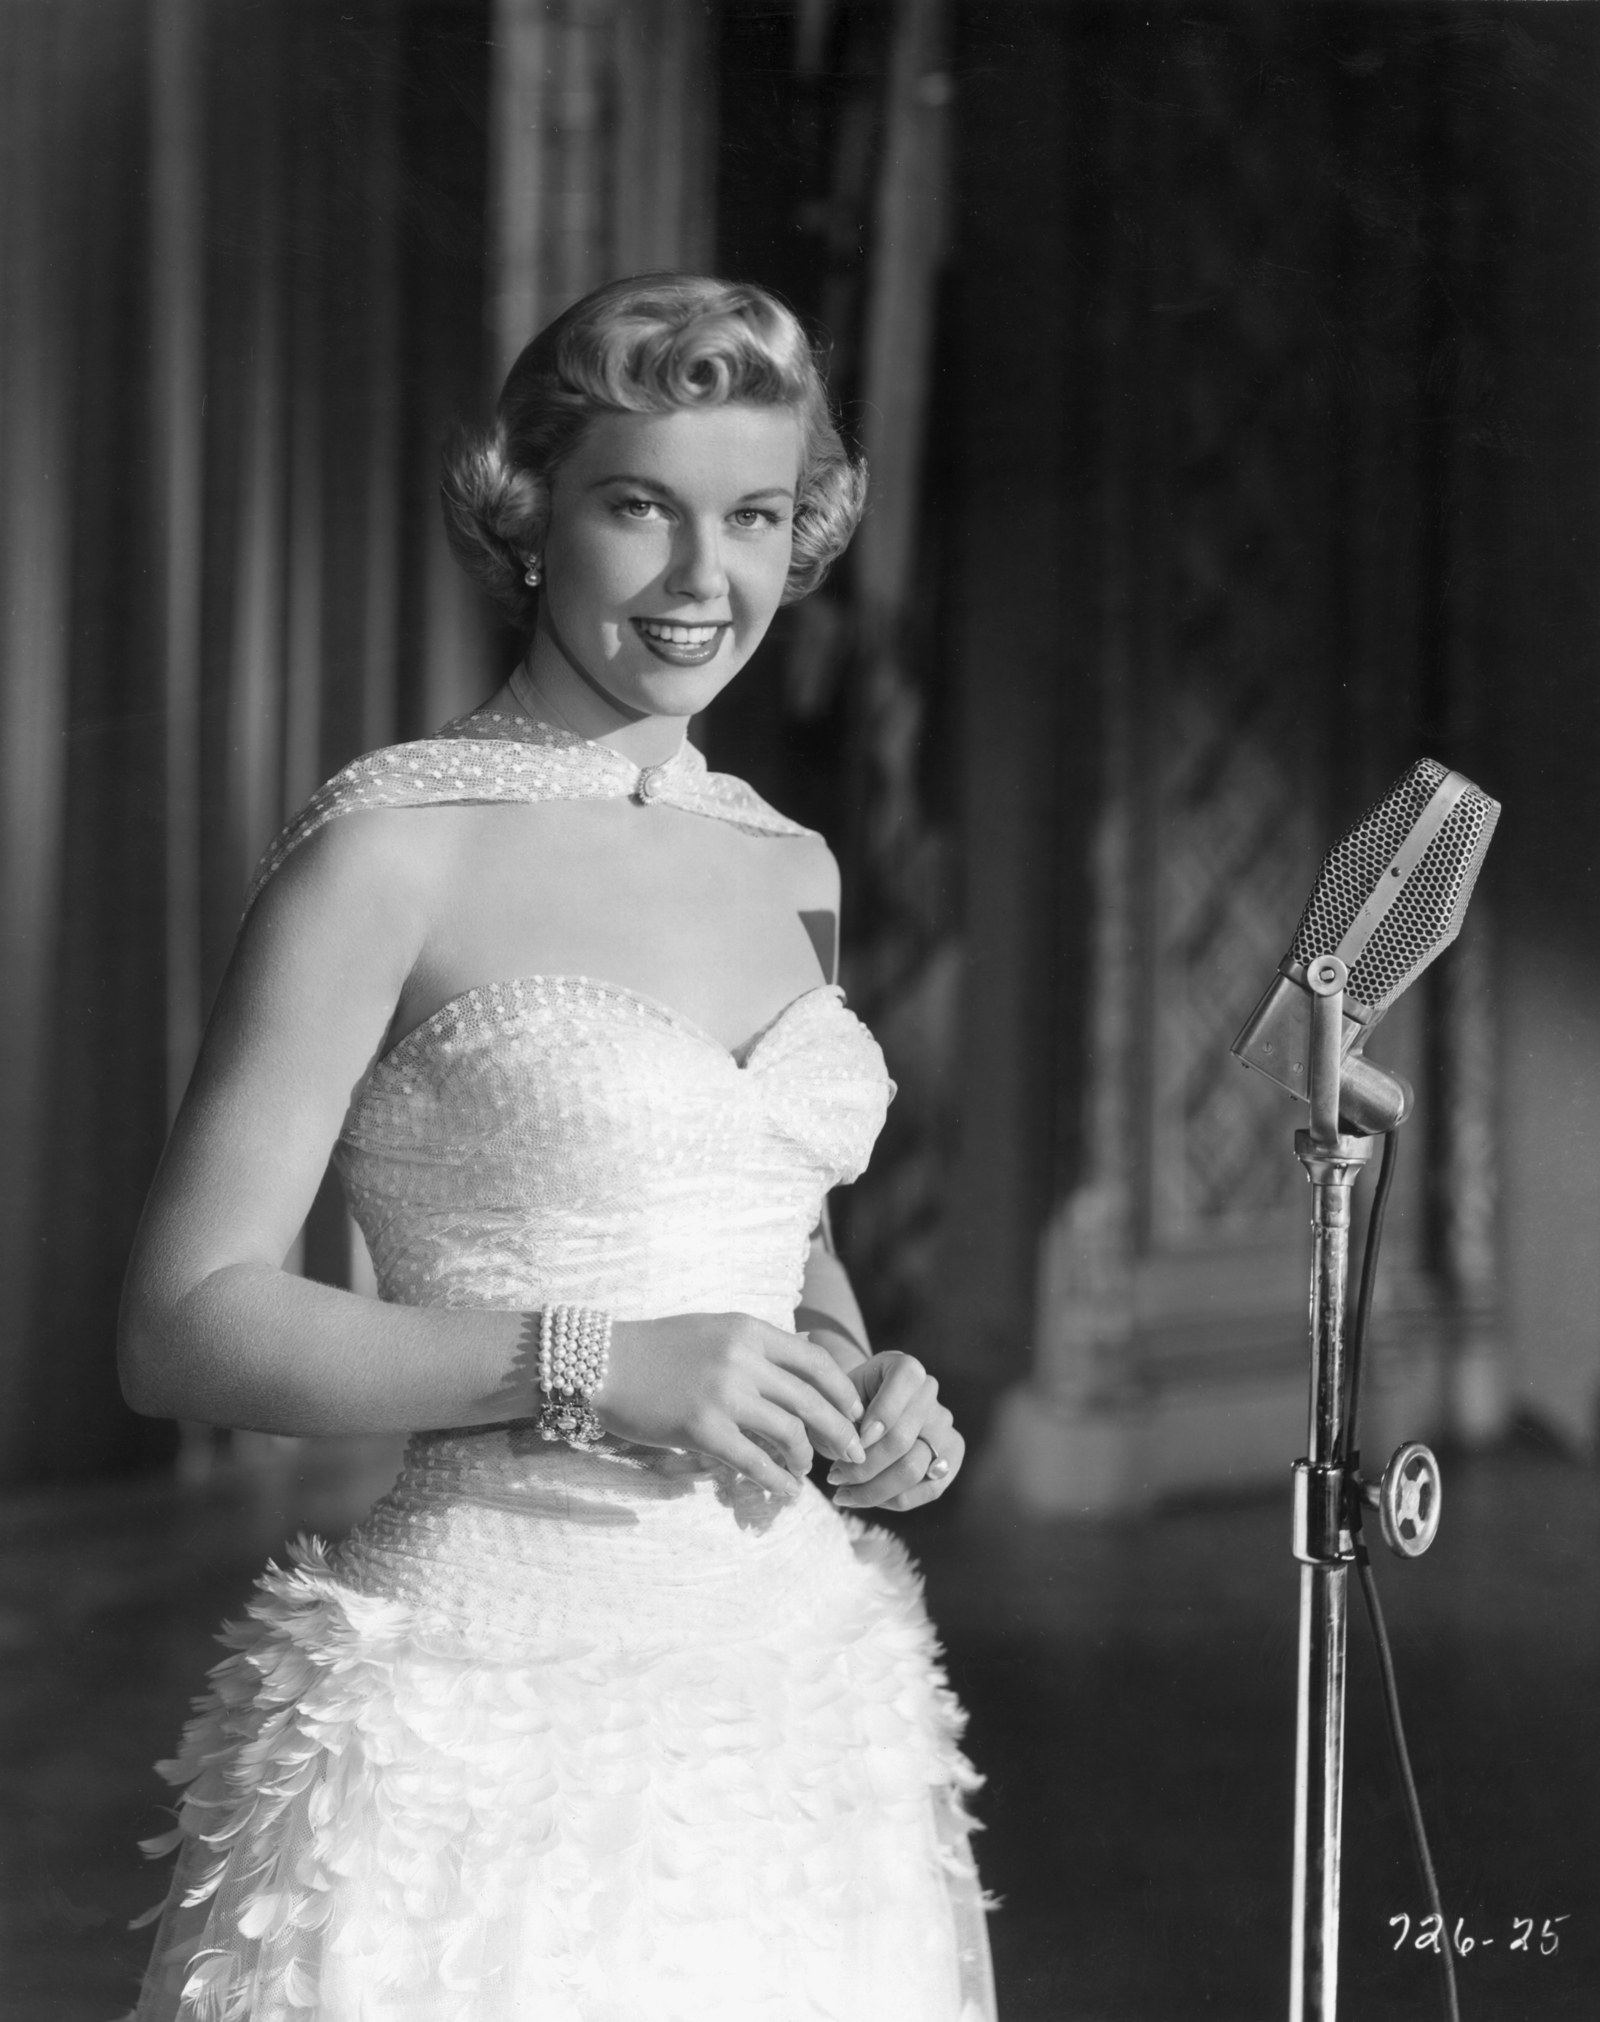 Doris Day smiling as she stands behind a microphone from director Michael Curtiz's film 'Young Man with a Horn'